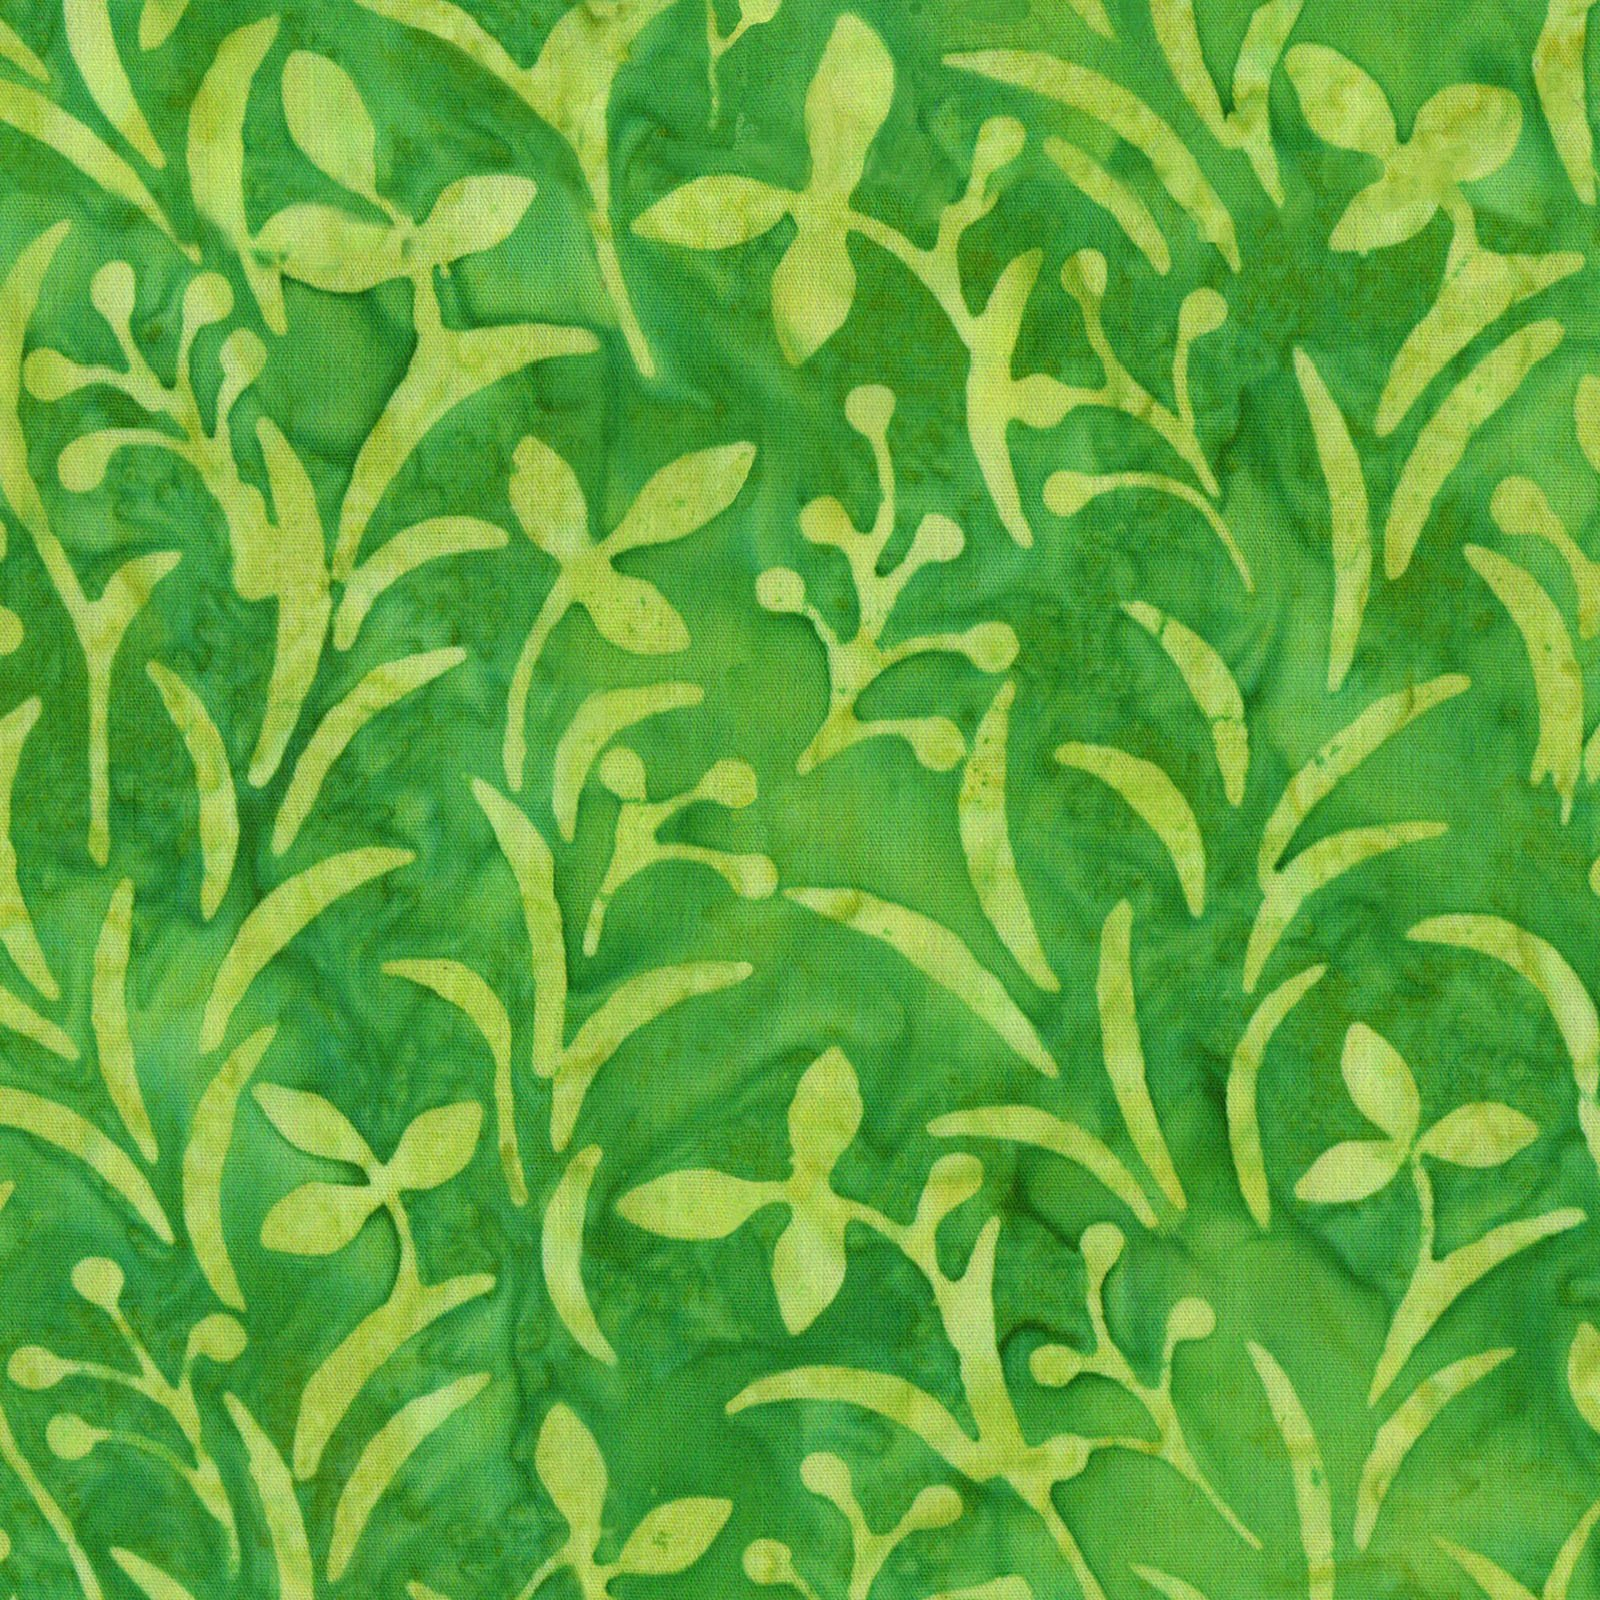 EESC-B53 G - COLOR THERAPY BATIKS BY MAYWOOD STUDIO TOSSED FLOWERS GRASS GREEN - ARRIVING DECEMBER 2020